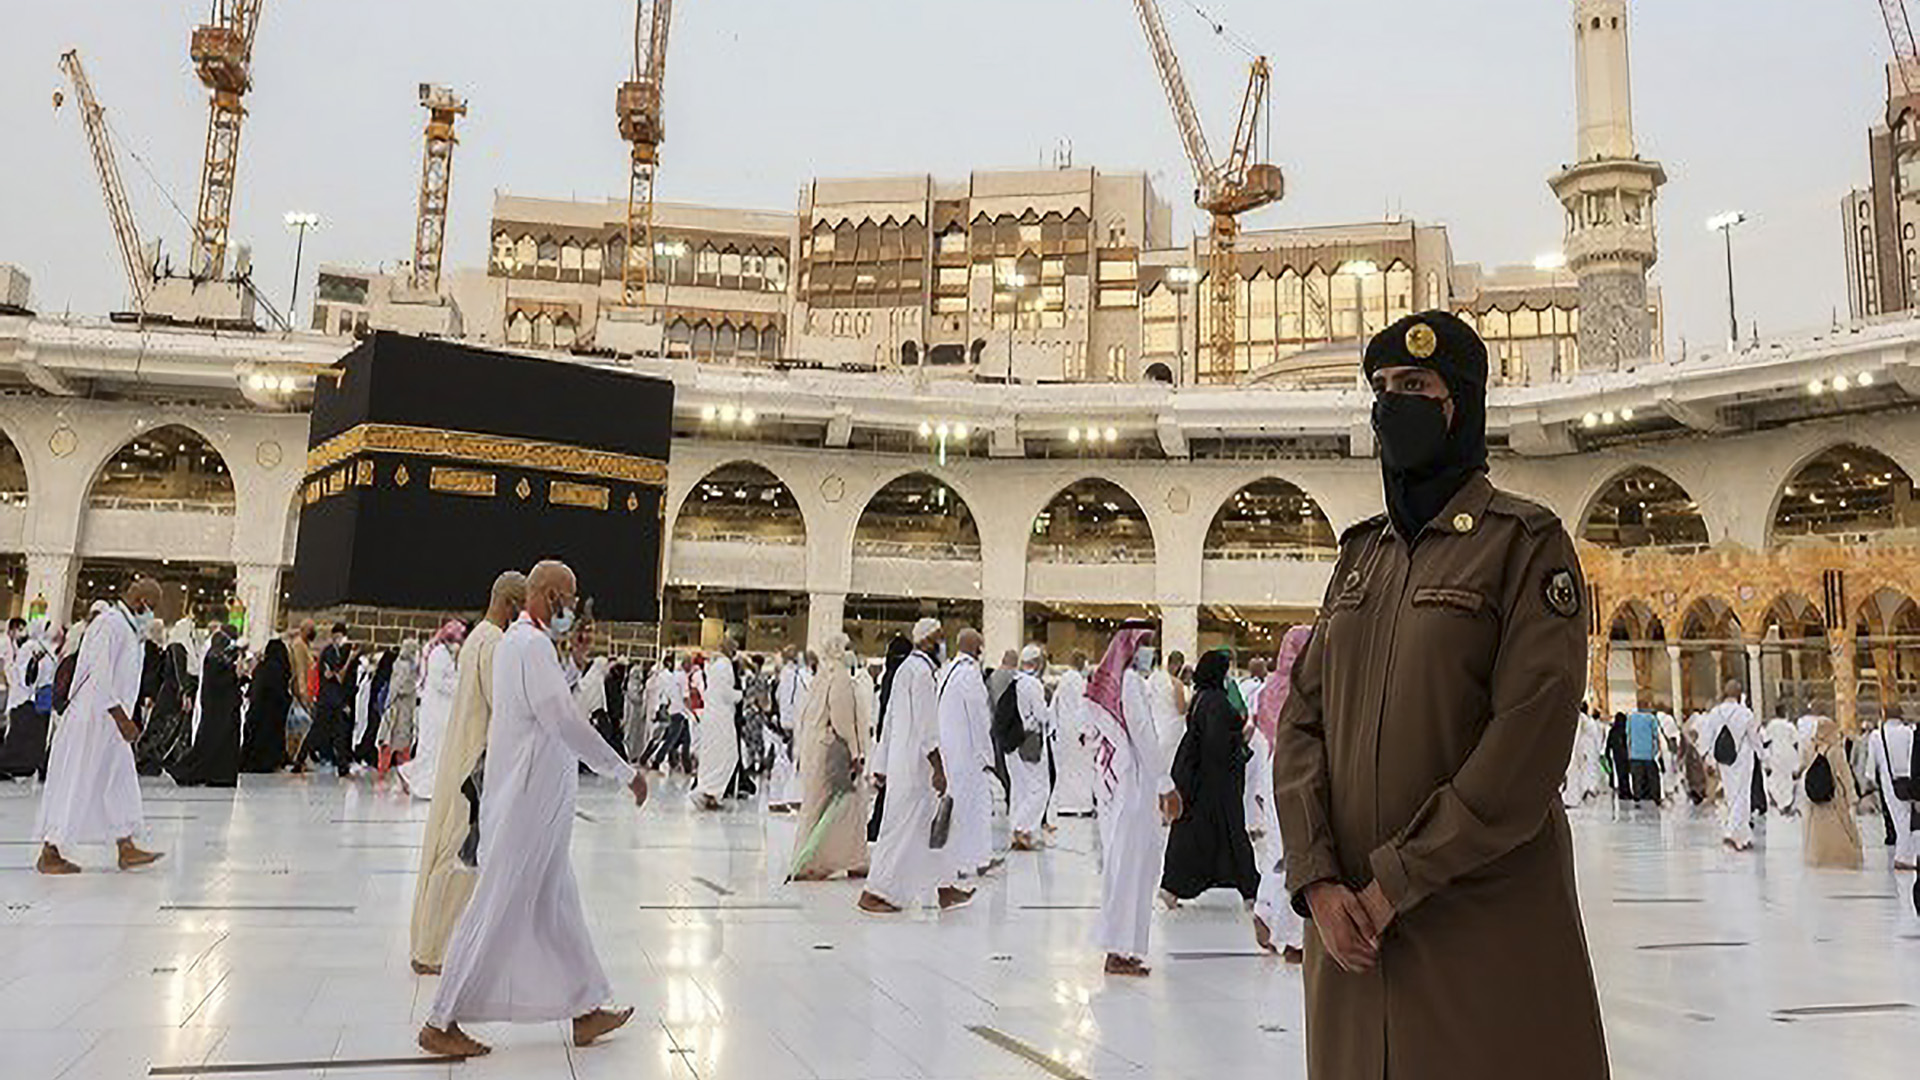 In A First, Saudi Female Officers Allowed To Guard Islam's Holiest Sites